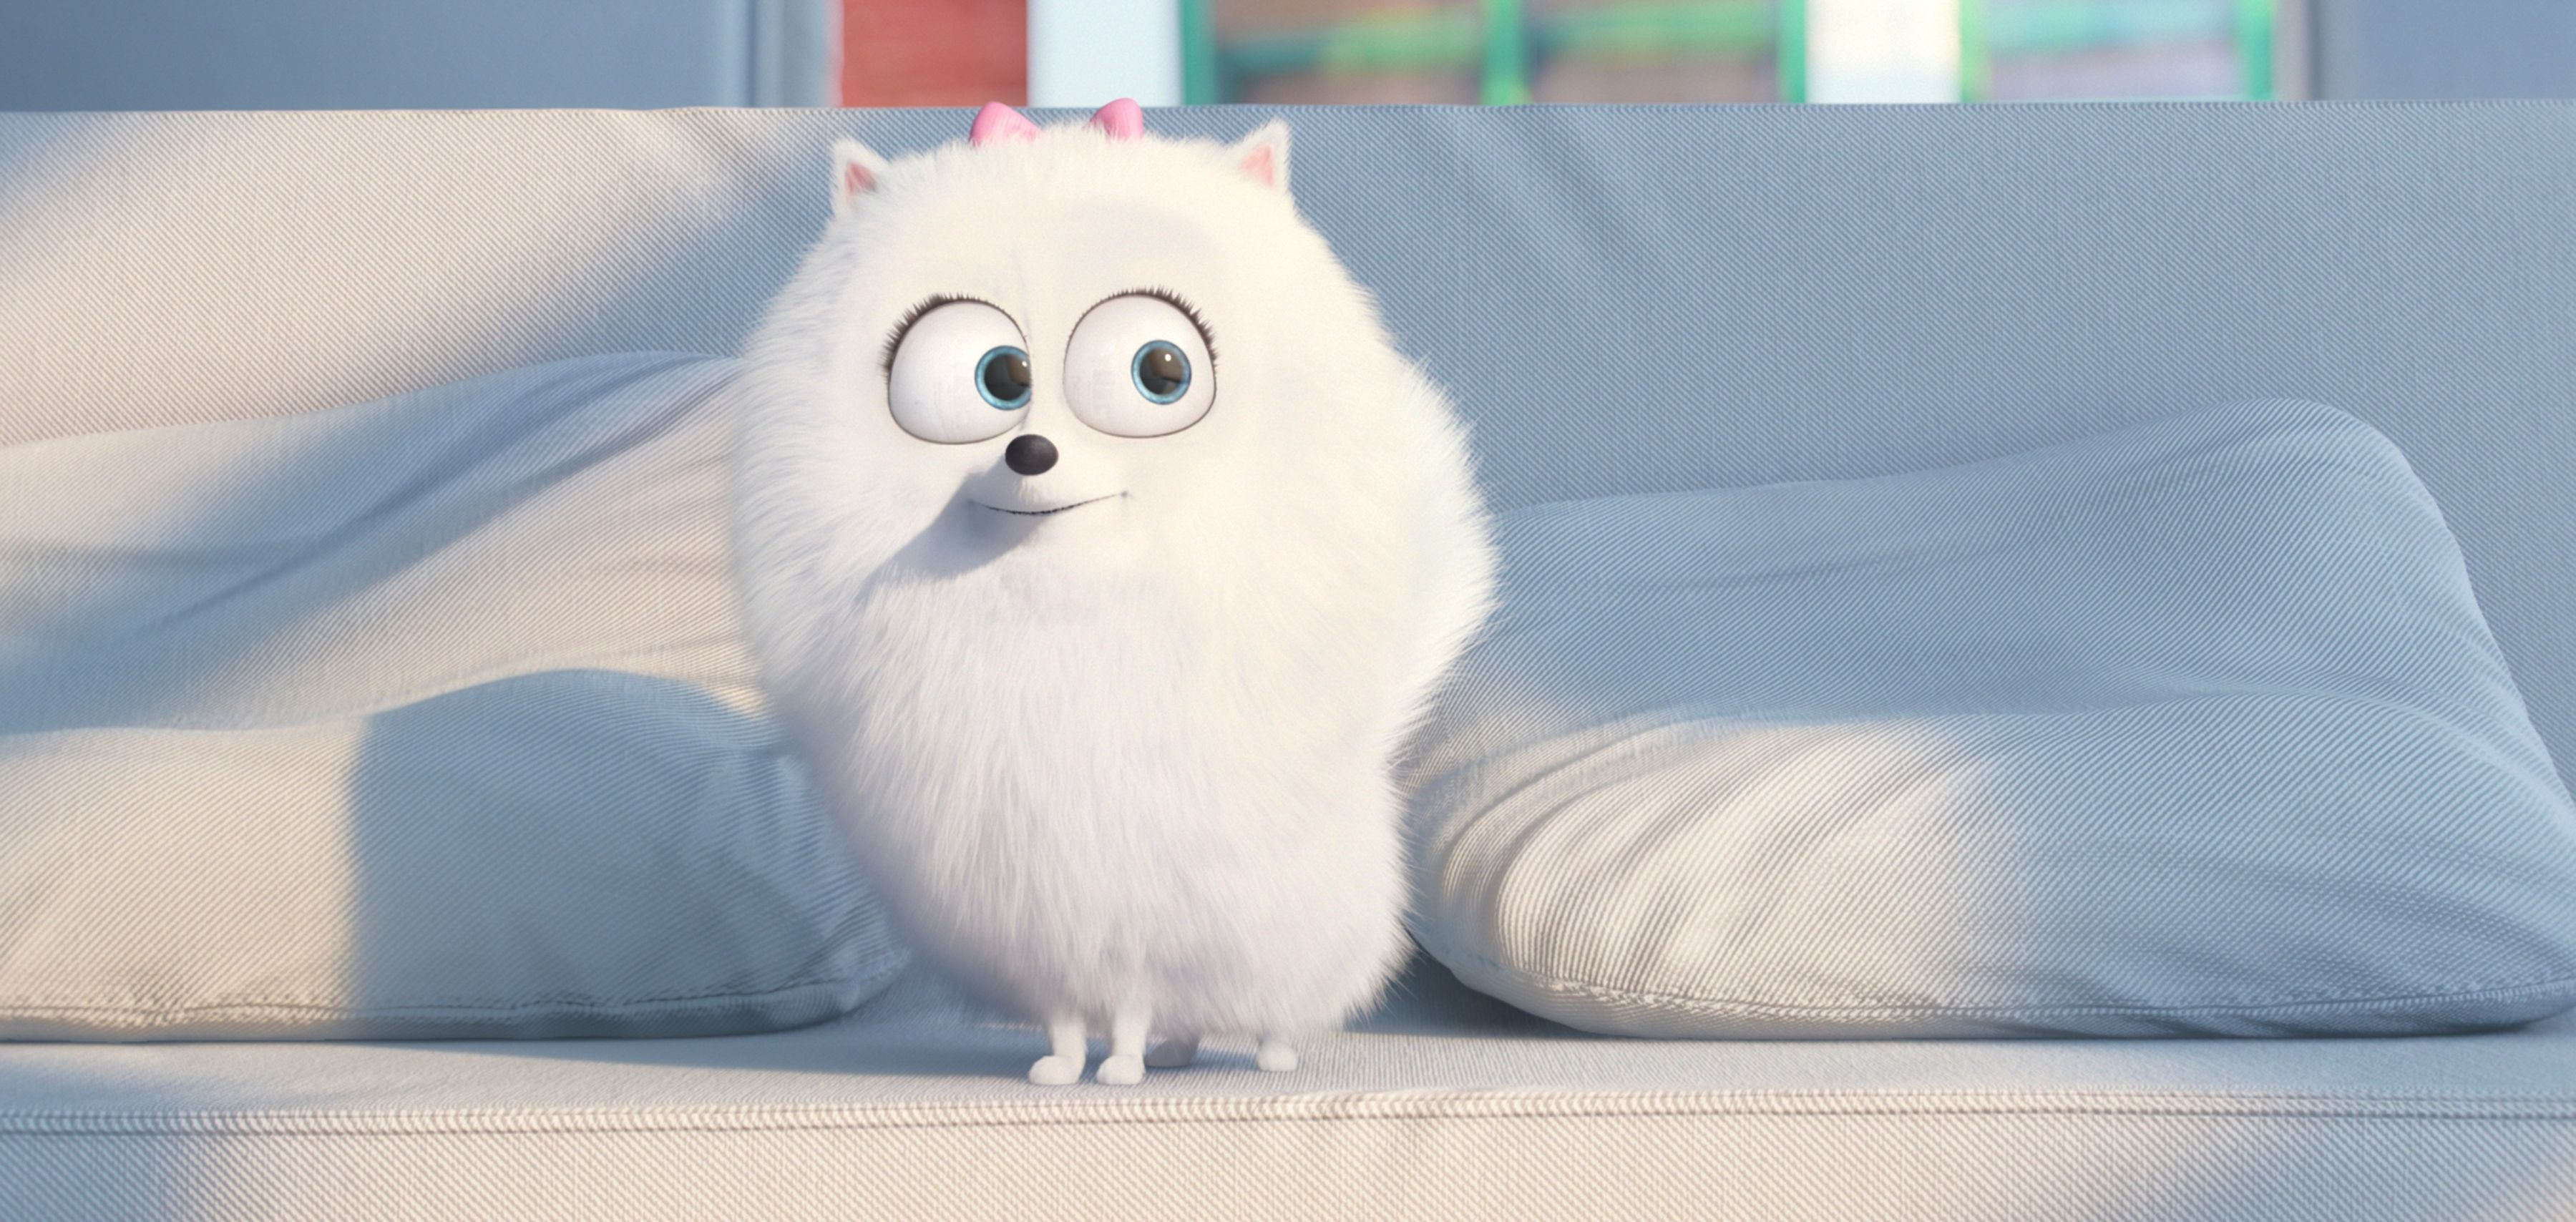 The Secret Life Of Pets Trailer Reveals Kevin Hart As A Bunny Collider